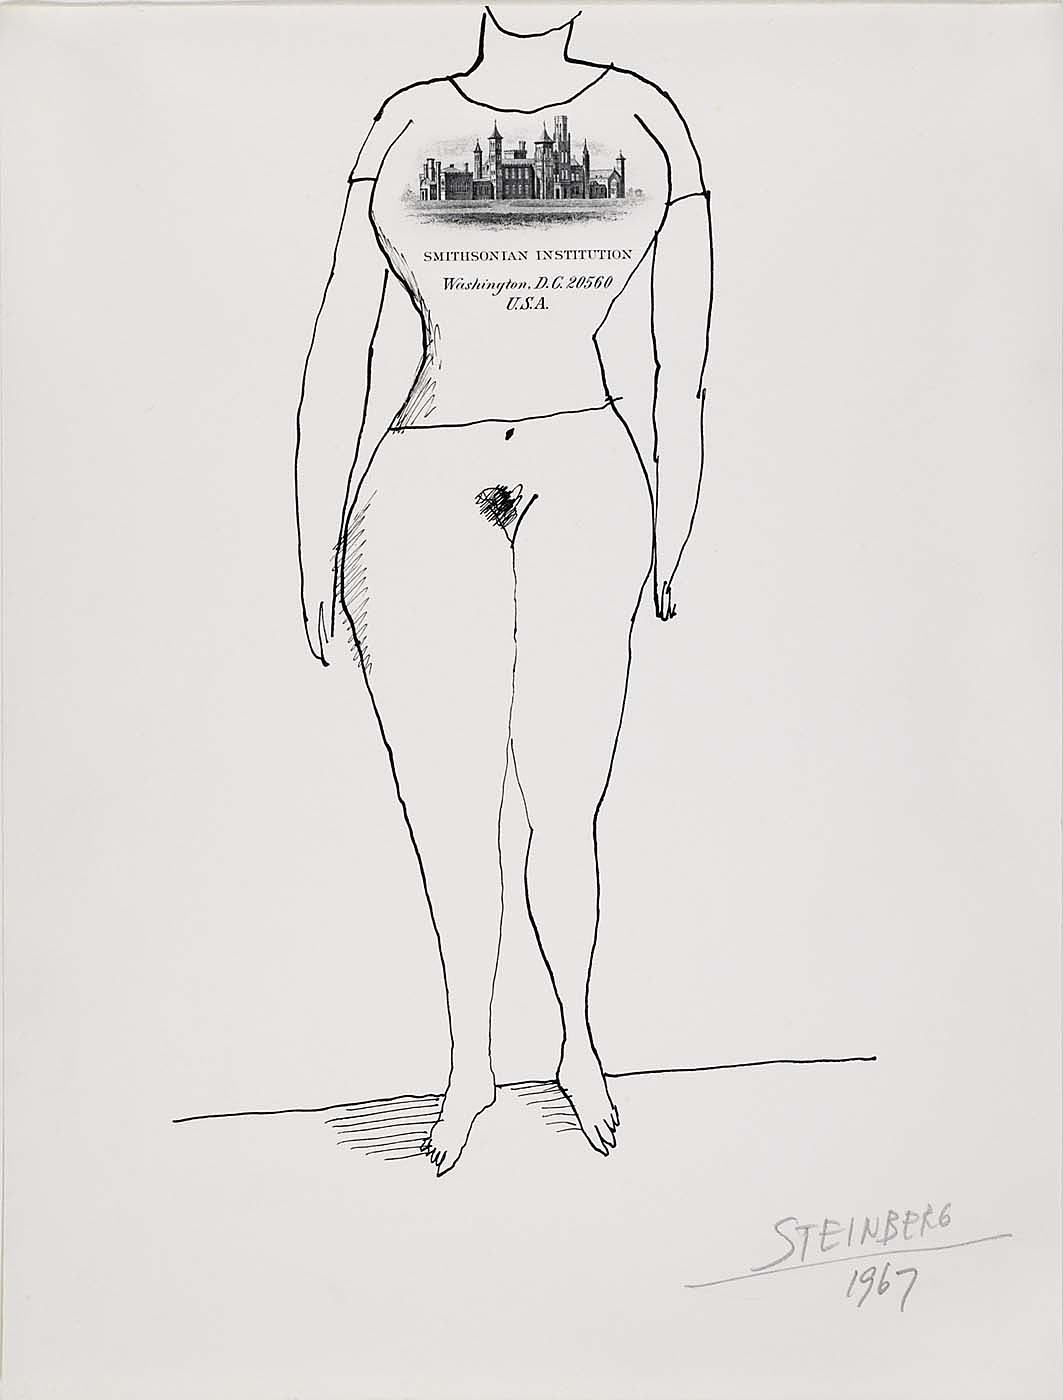 Untitled, by Saul Steinberg, 1967, Smithsonian American Art Museum